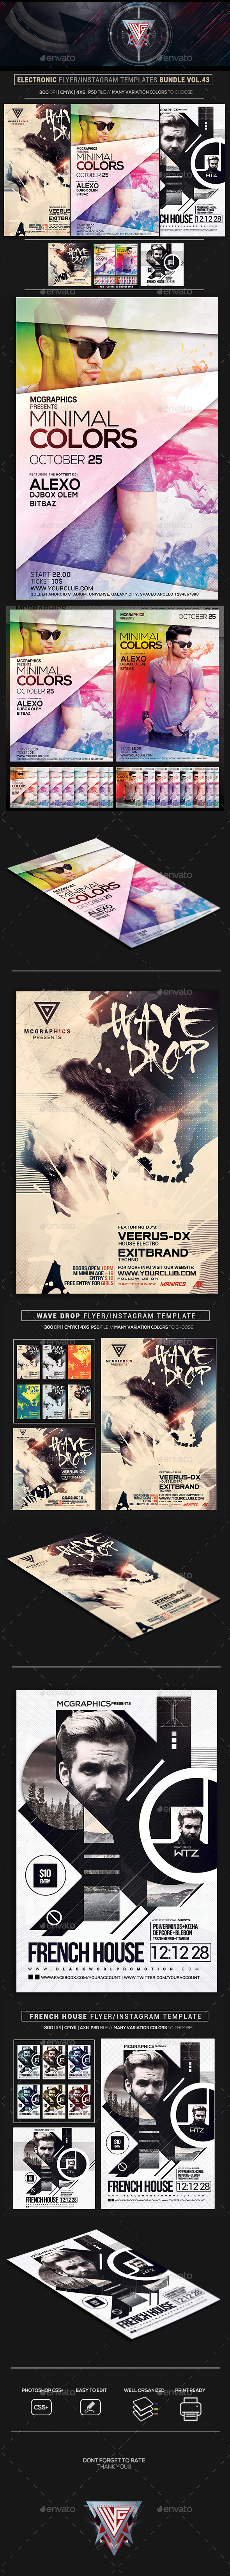 Electro Music Flyer/Instagram Bundle Vol. 44 - Print Templates